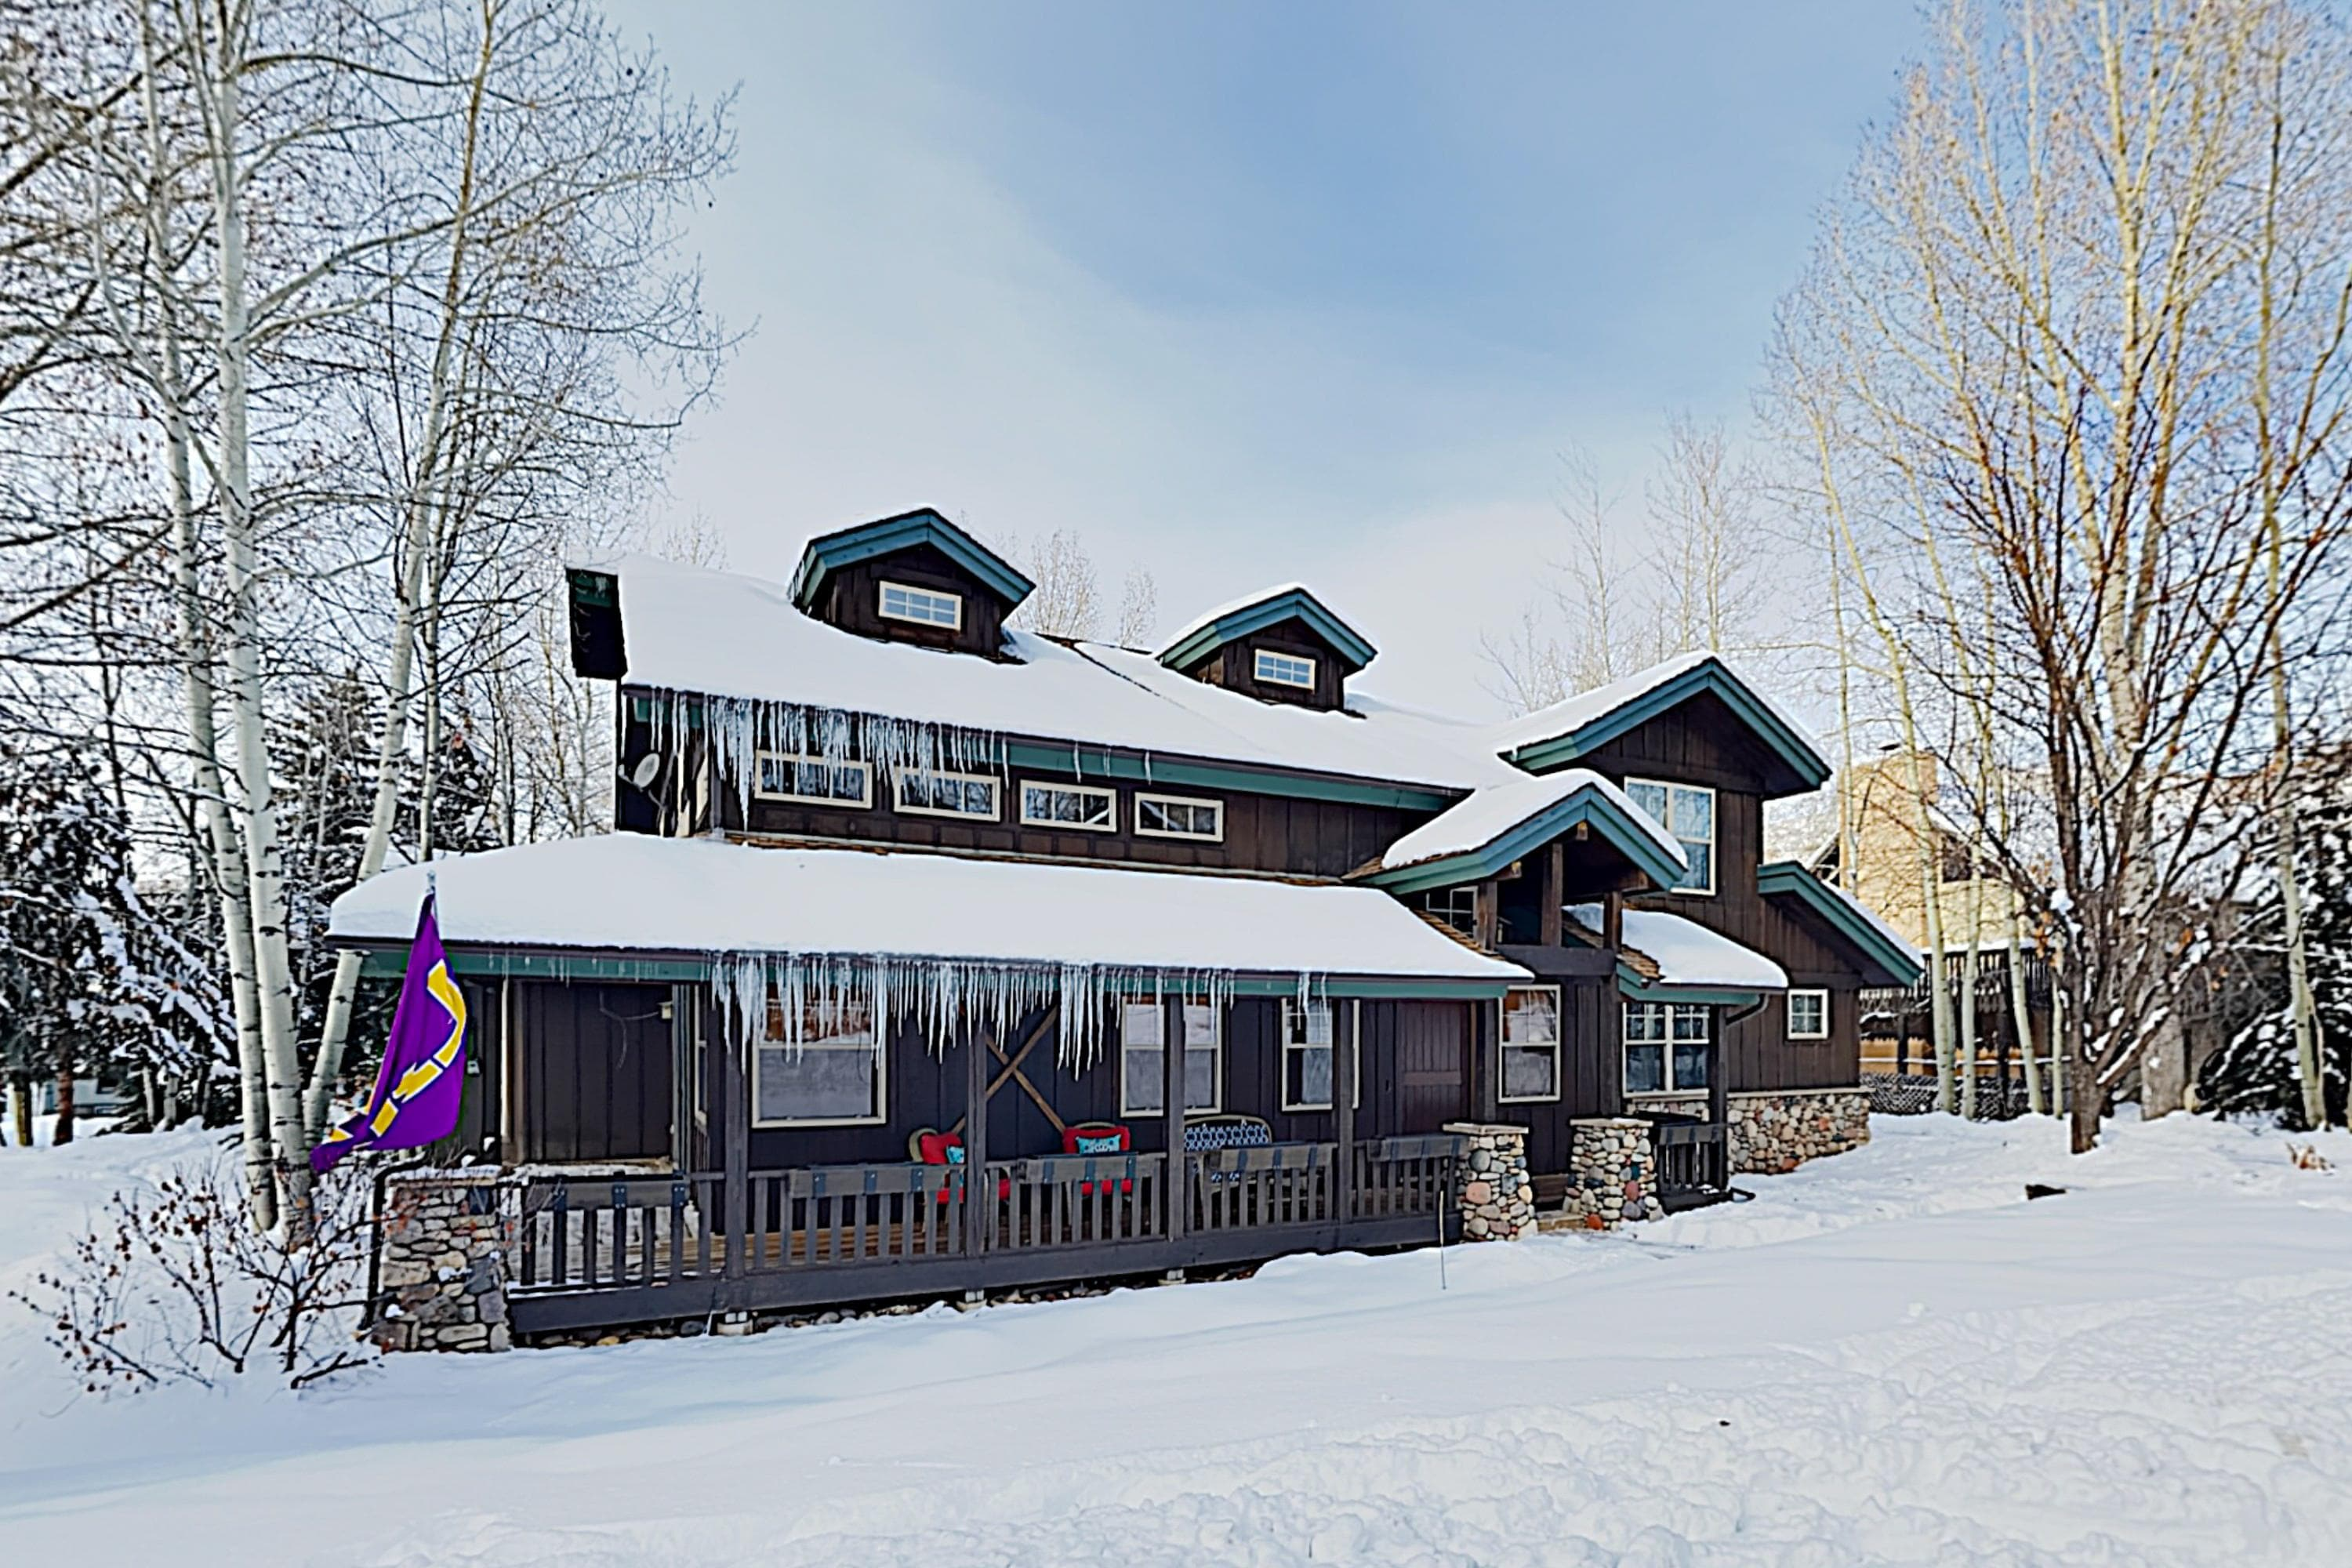 Get ready for fun and adventure — this home is near hiking trails and world-class ski resorts.